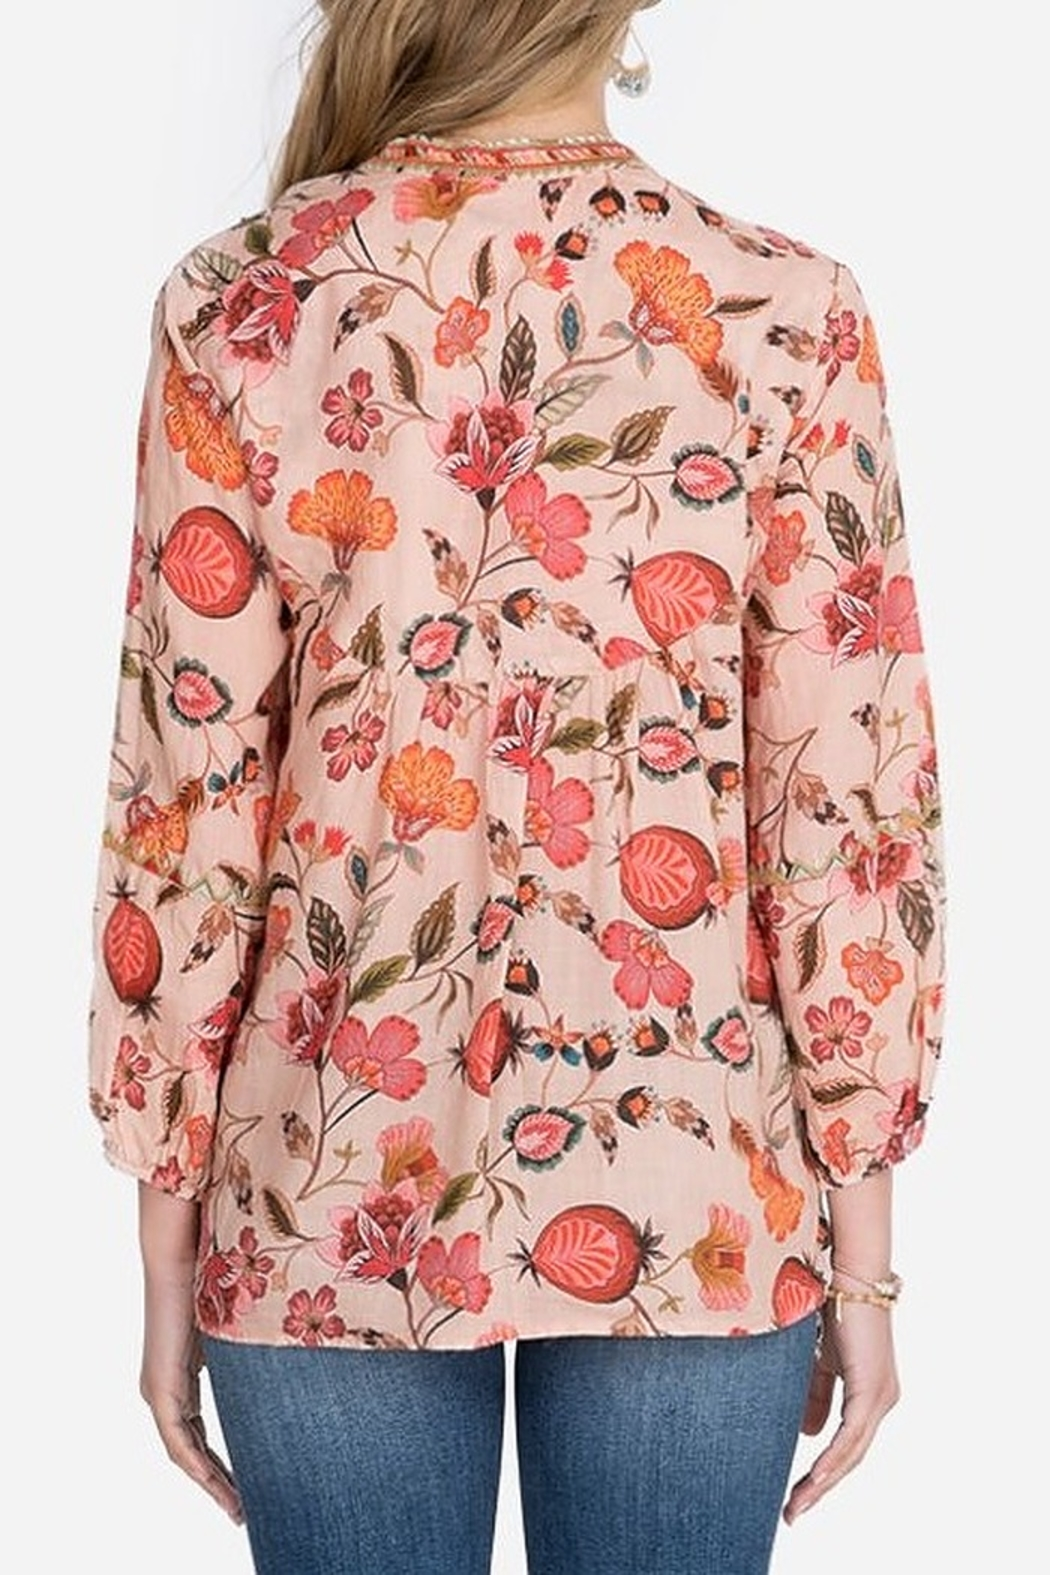 Johnny Was Paris Effortless Blouse - Front Full Image